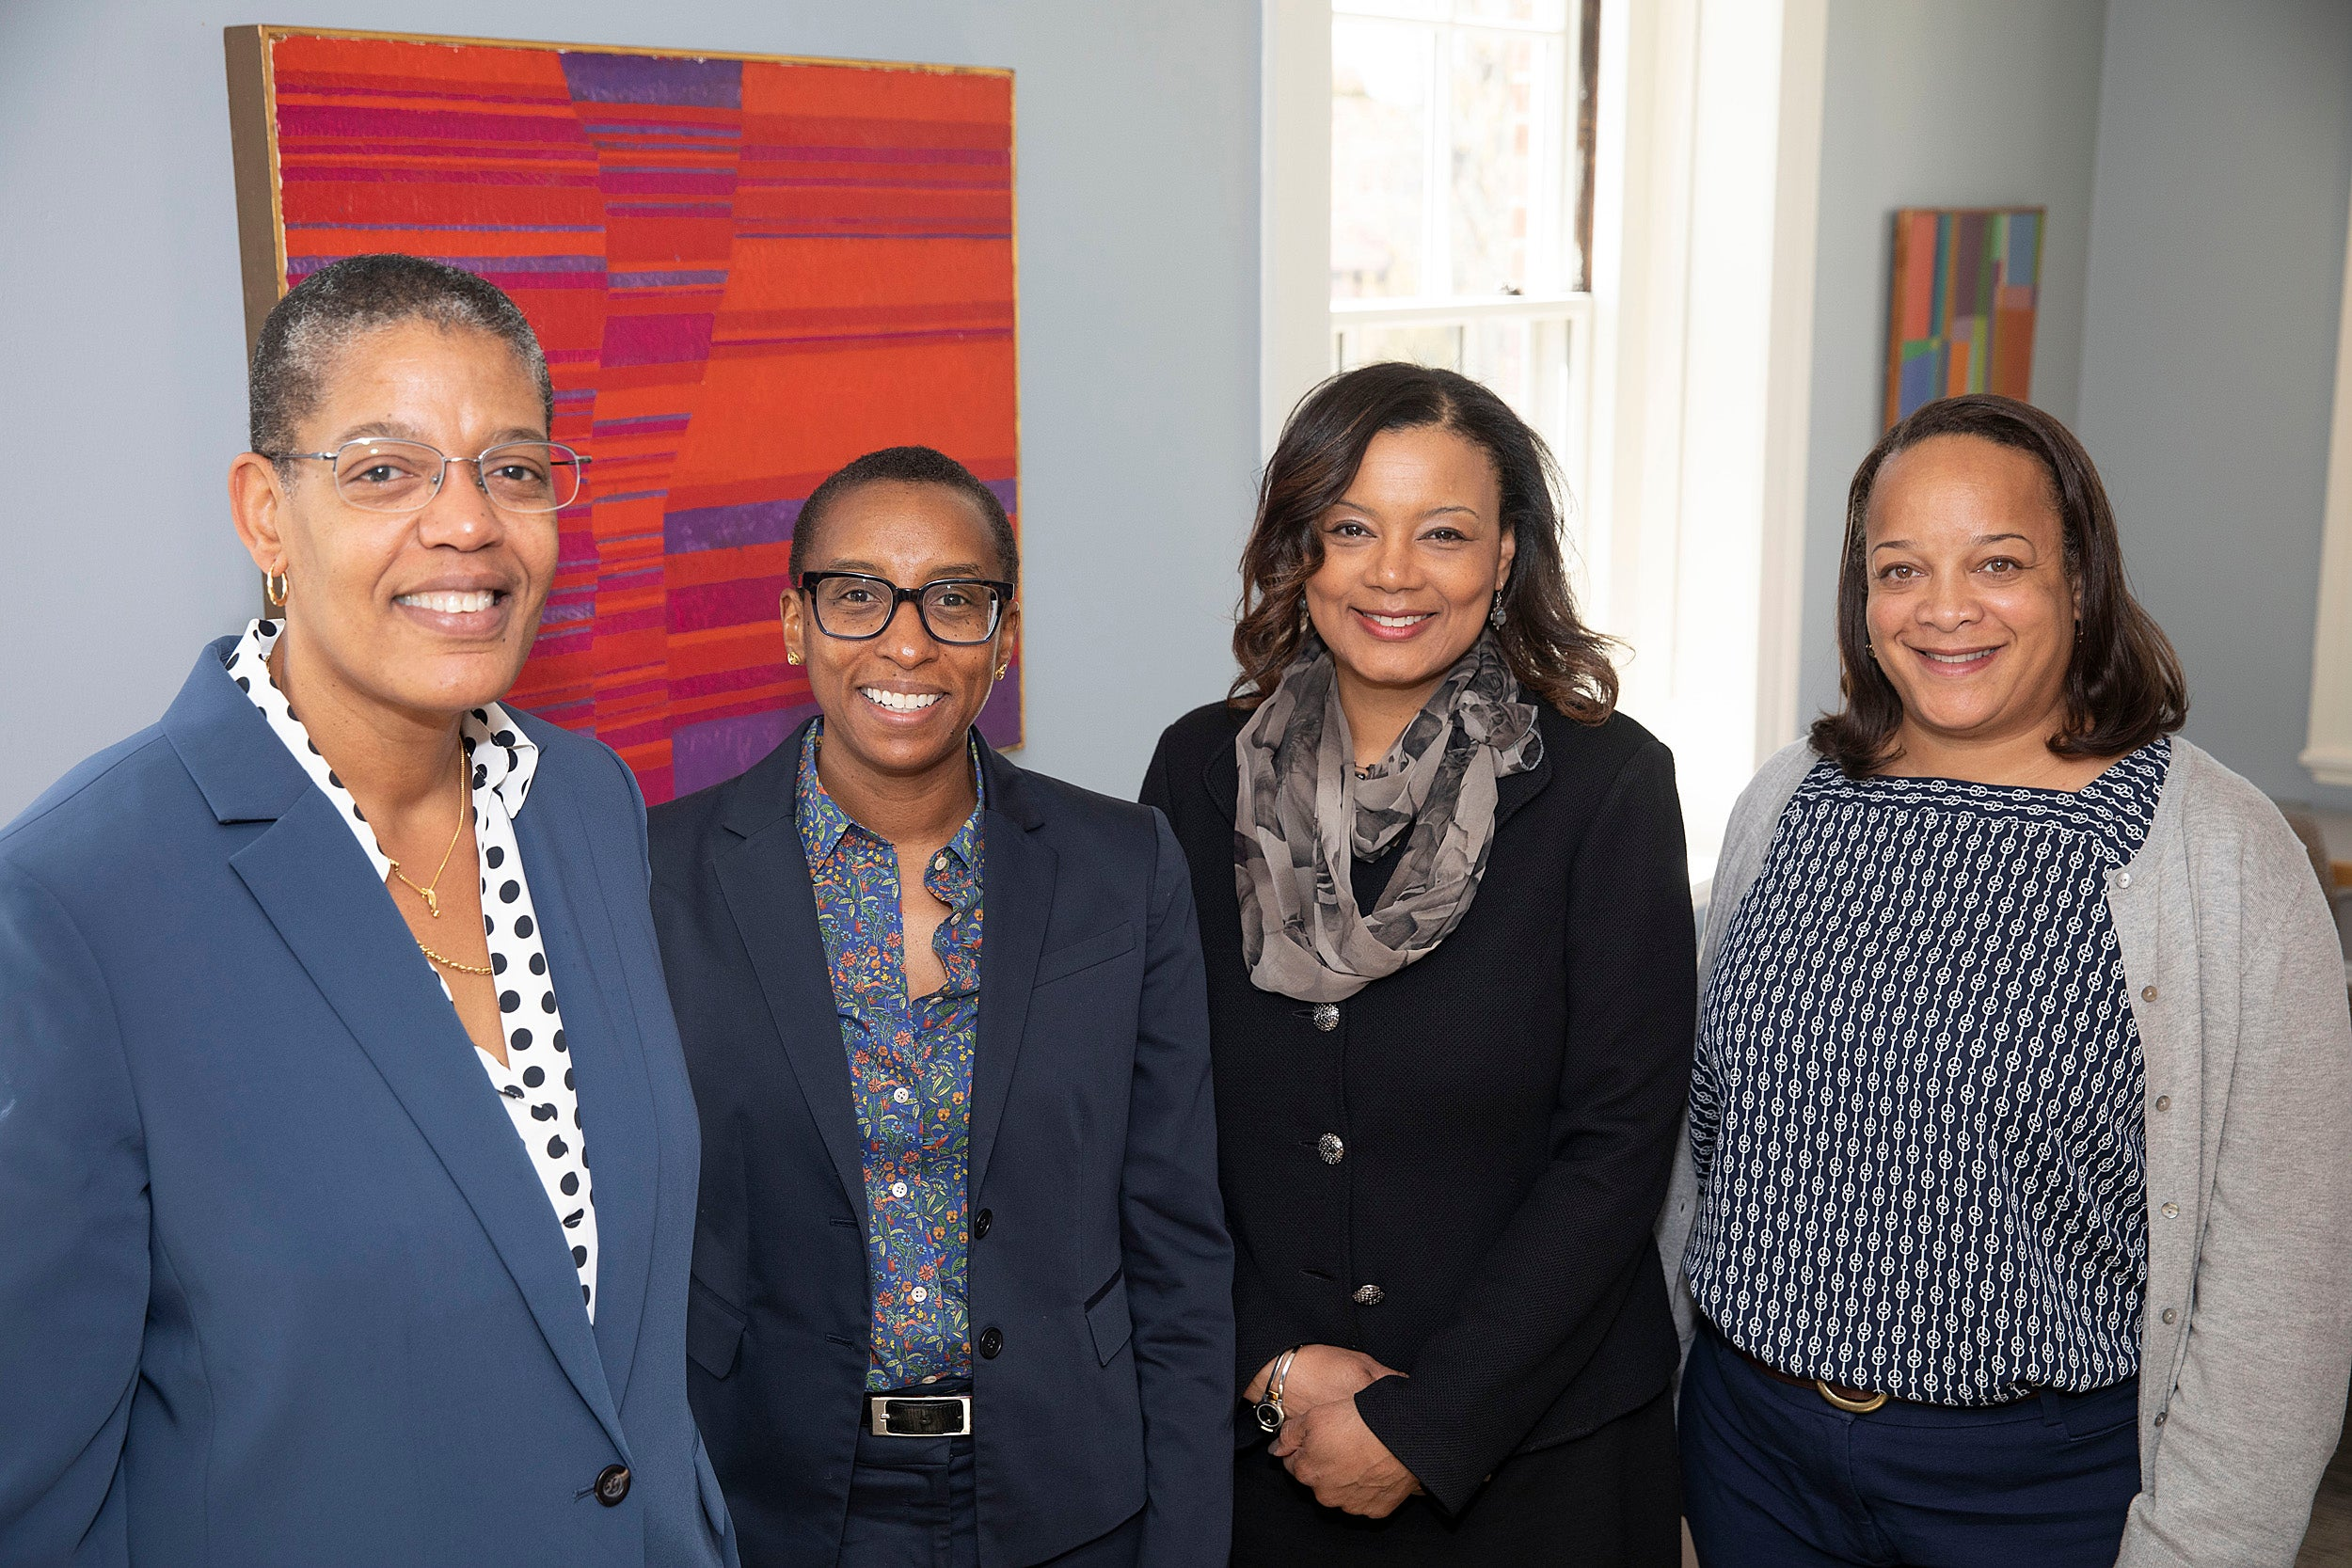 Four women discuss the challenges they face as Harvard deans